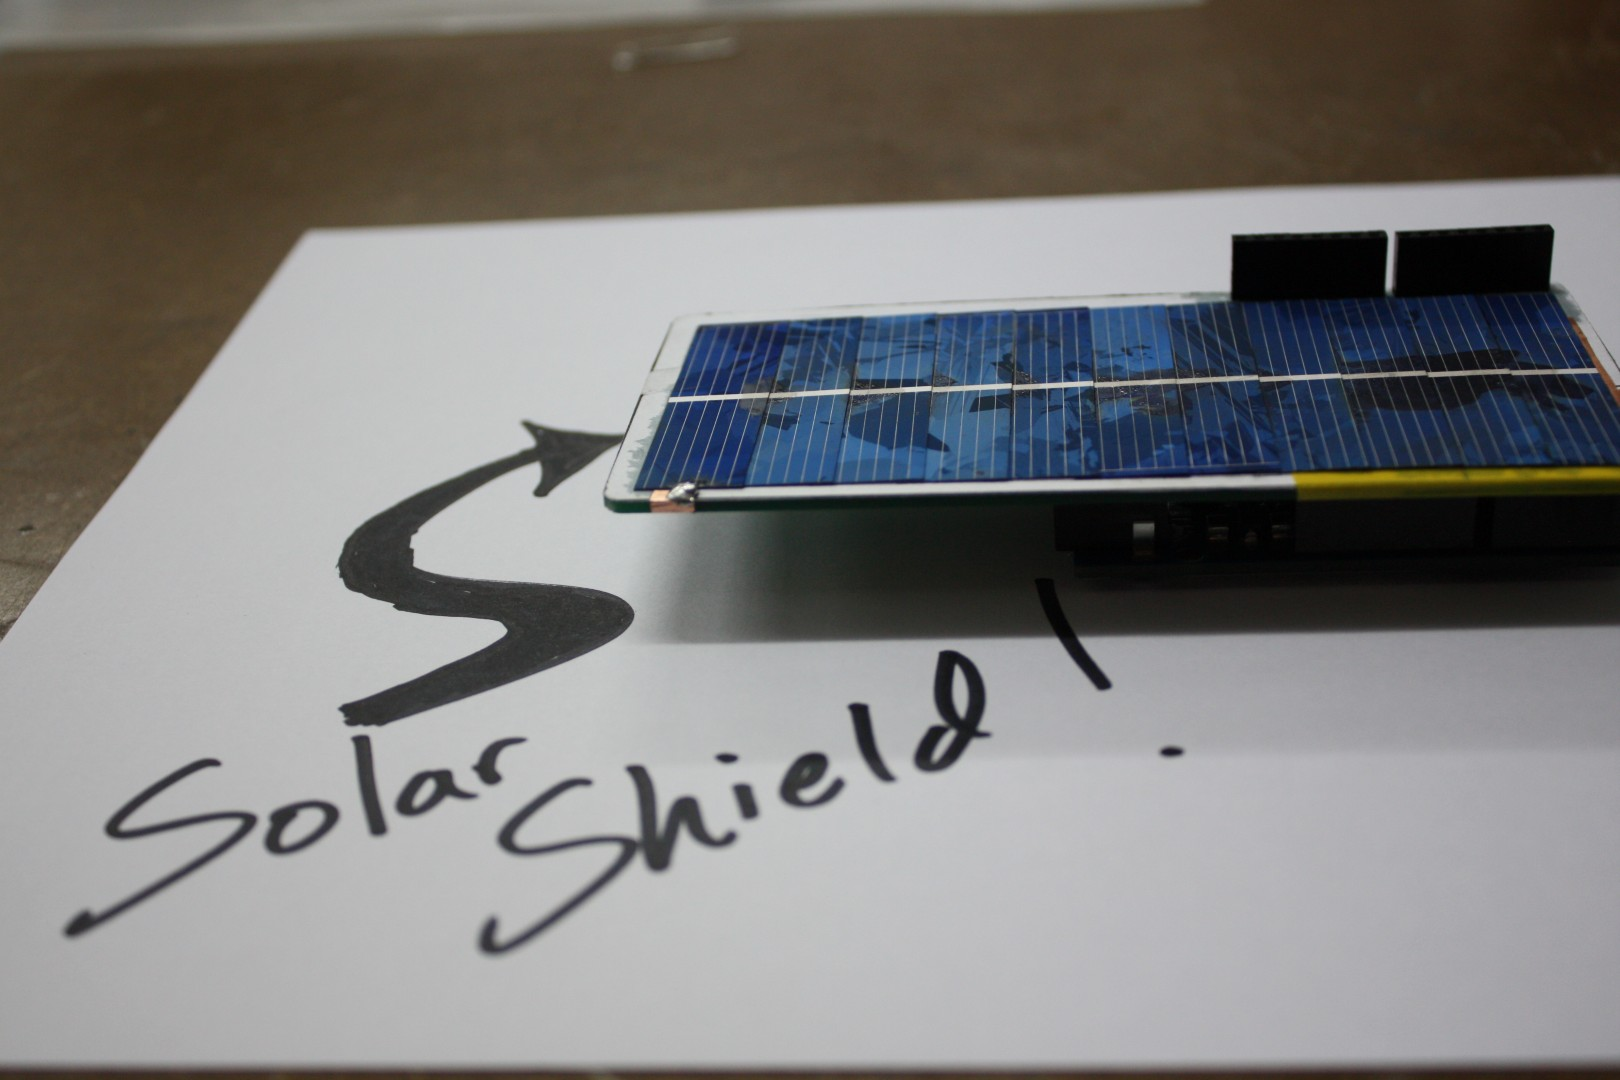 Arduino Solar Shield - A DIY solar source for your projects without waiting for PCBs